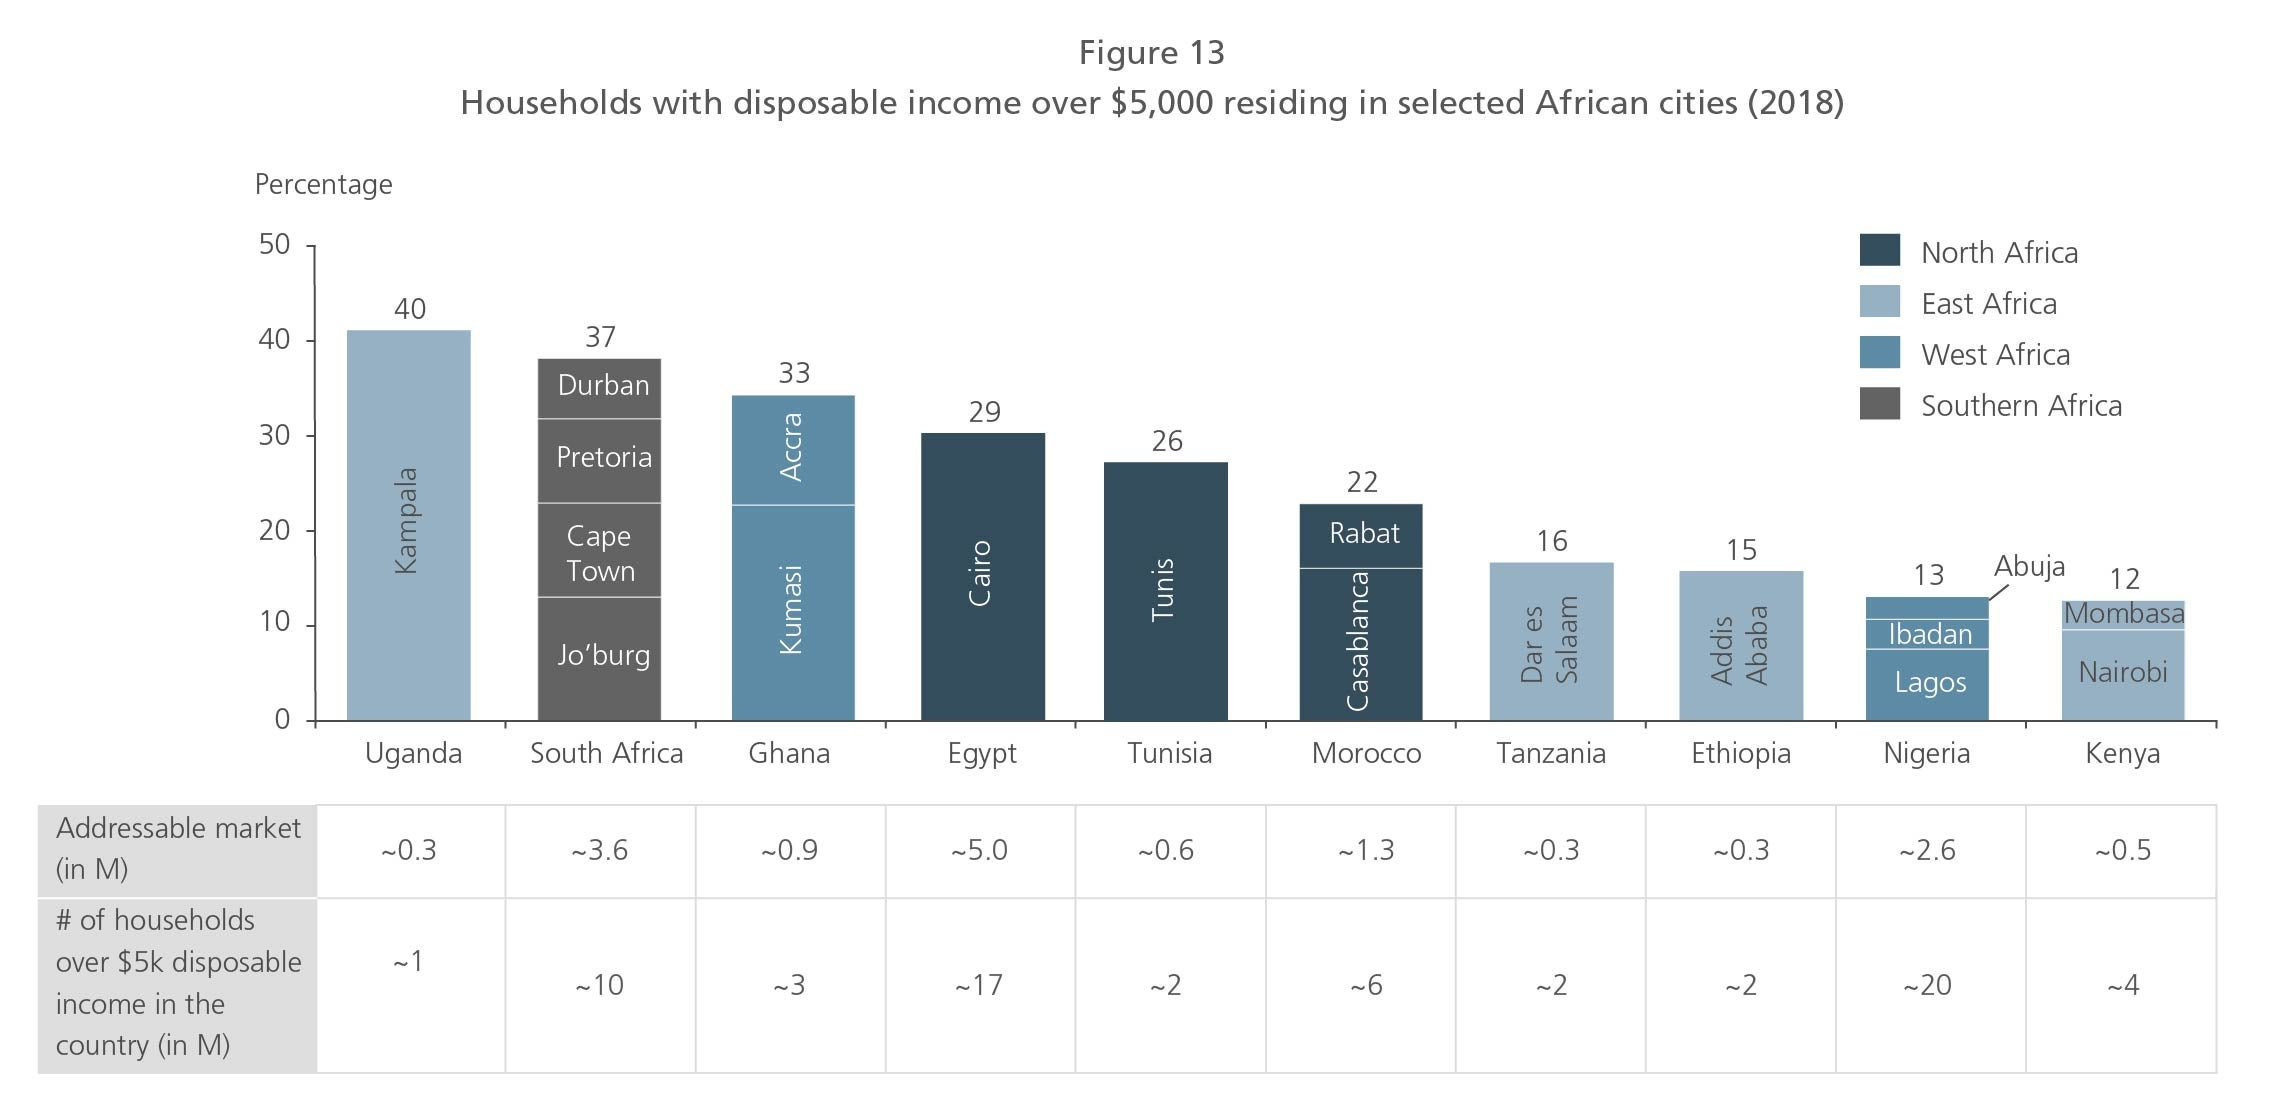 Households with disposable income over $5,000 residing in selected African cities (2018)